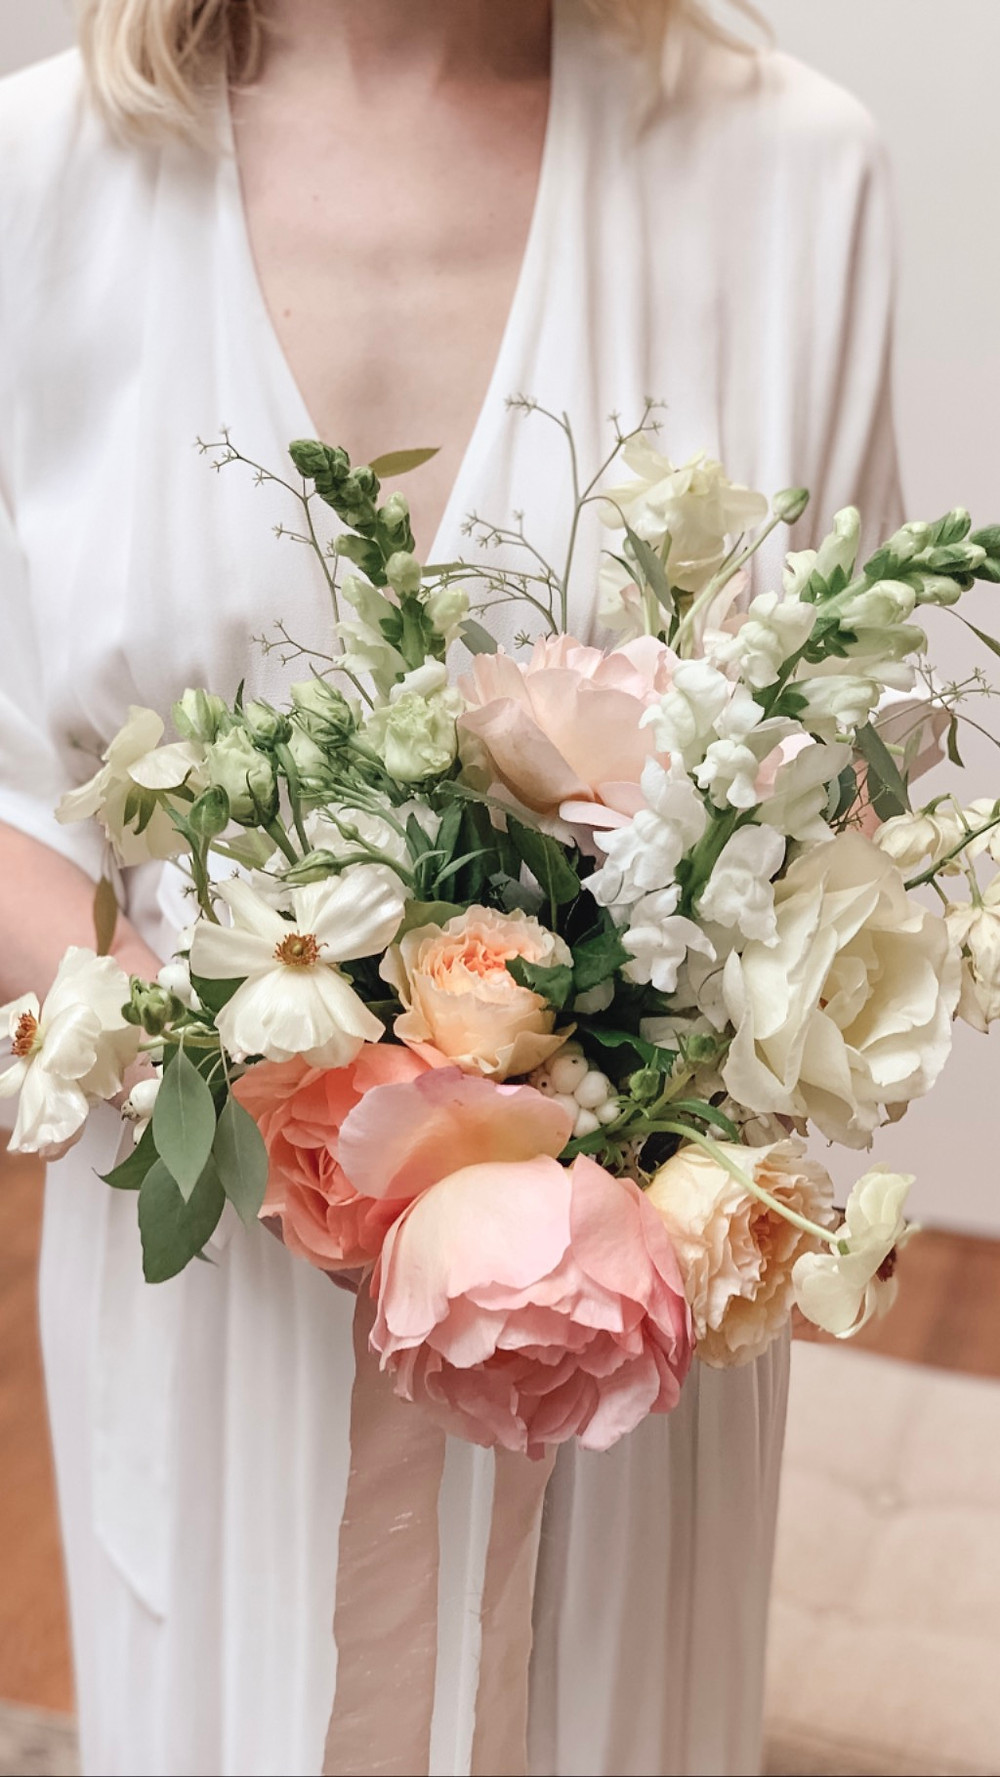 Wedding bouquet made with blush garden roses and soft greenery.